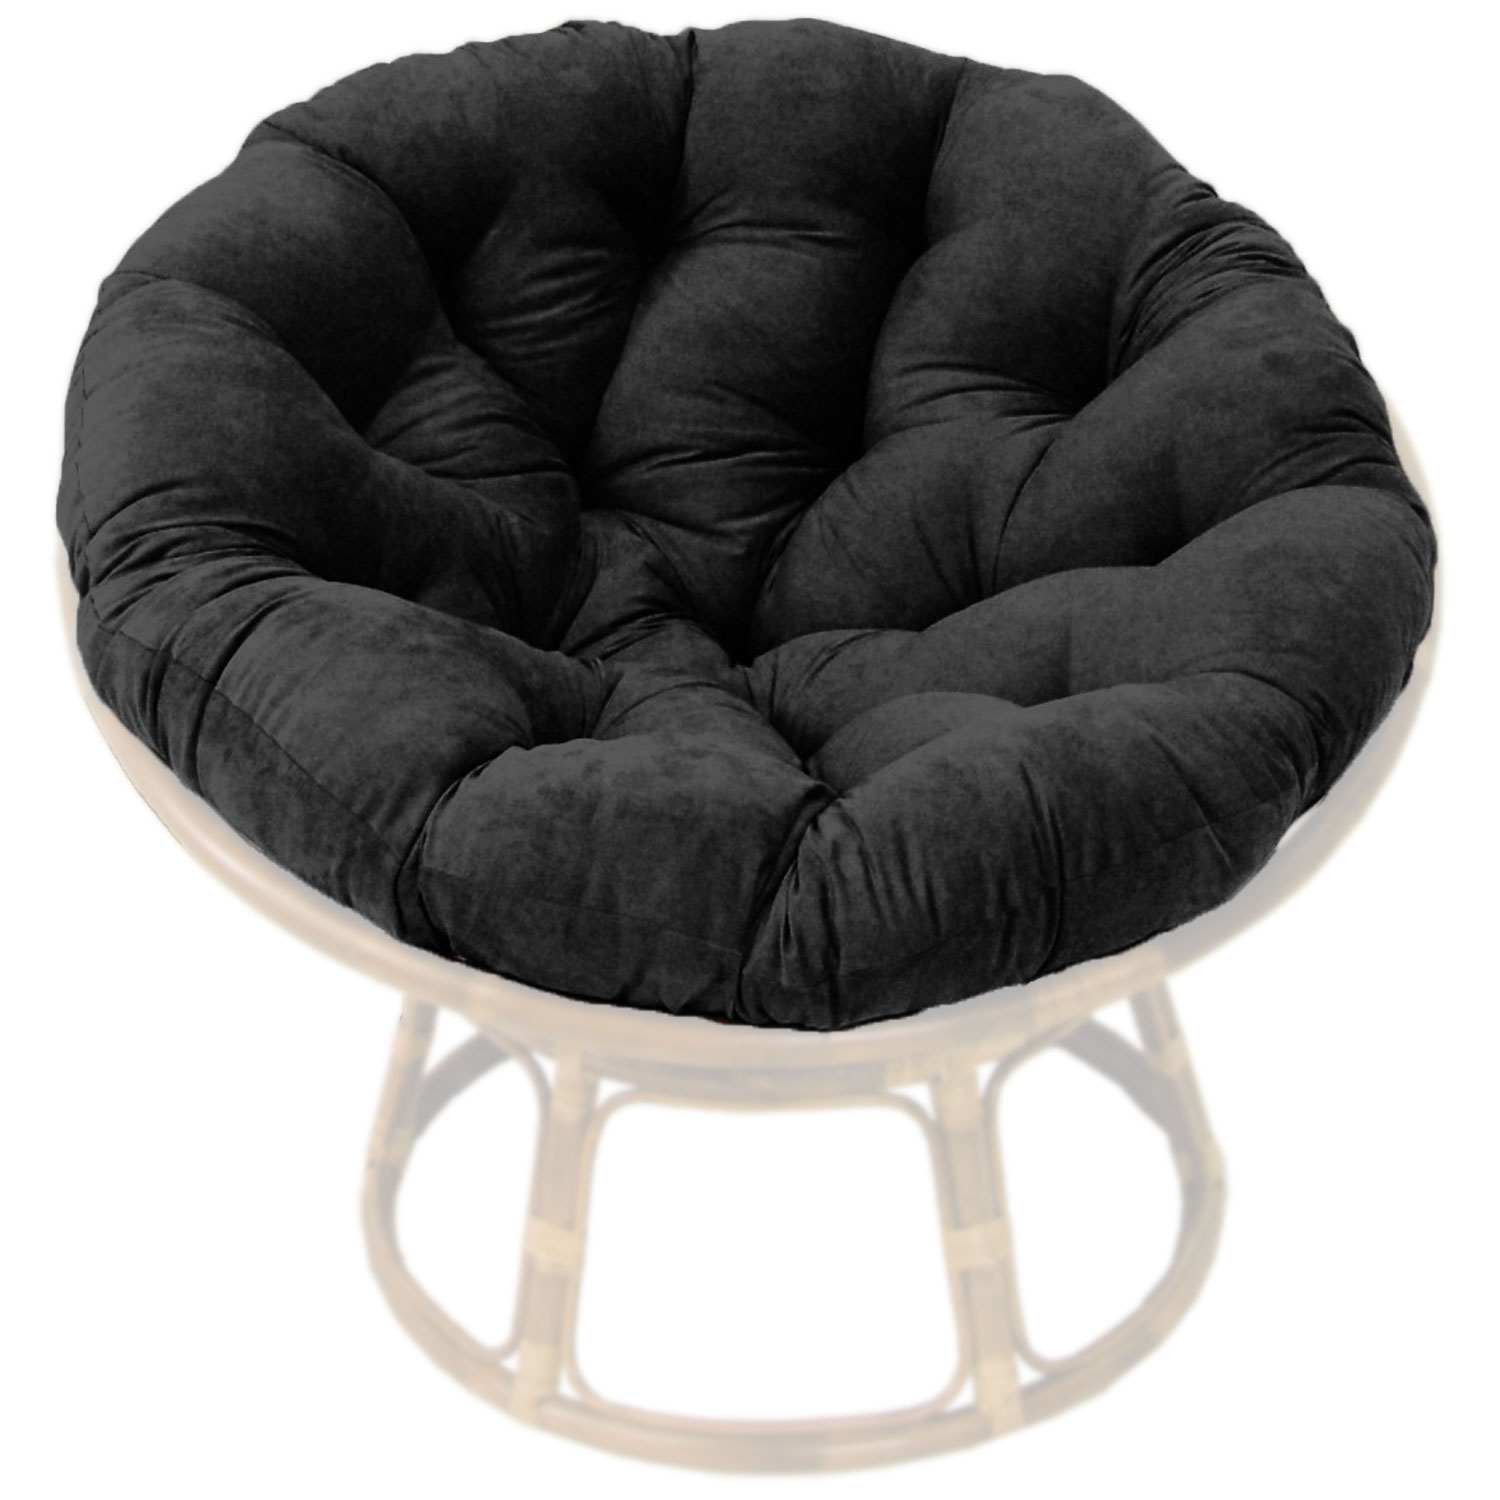 46 Inch Microsuede Tufted Papasan Cushion - BLZ-93302-MS